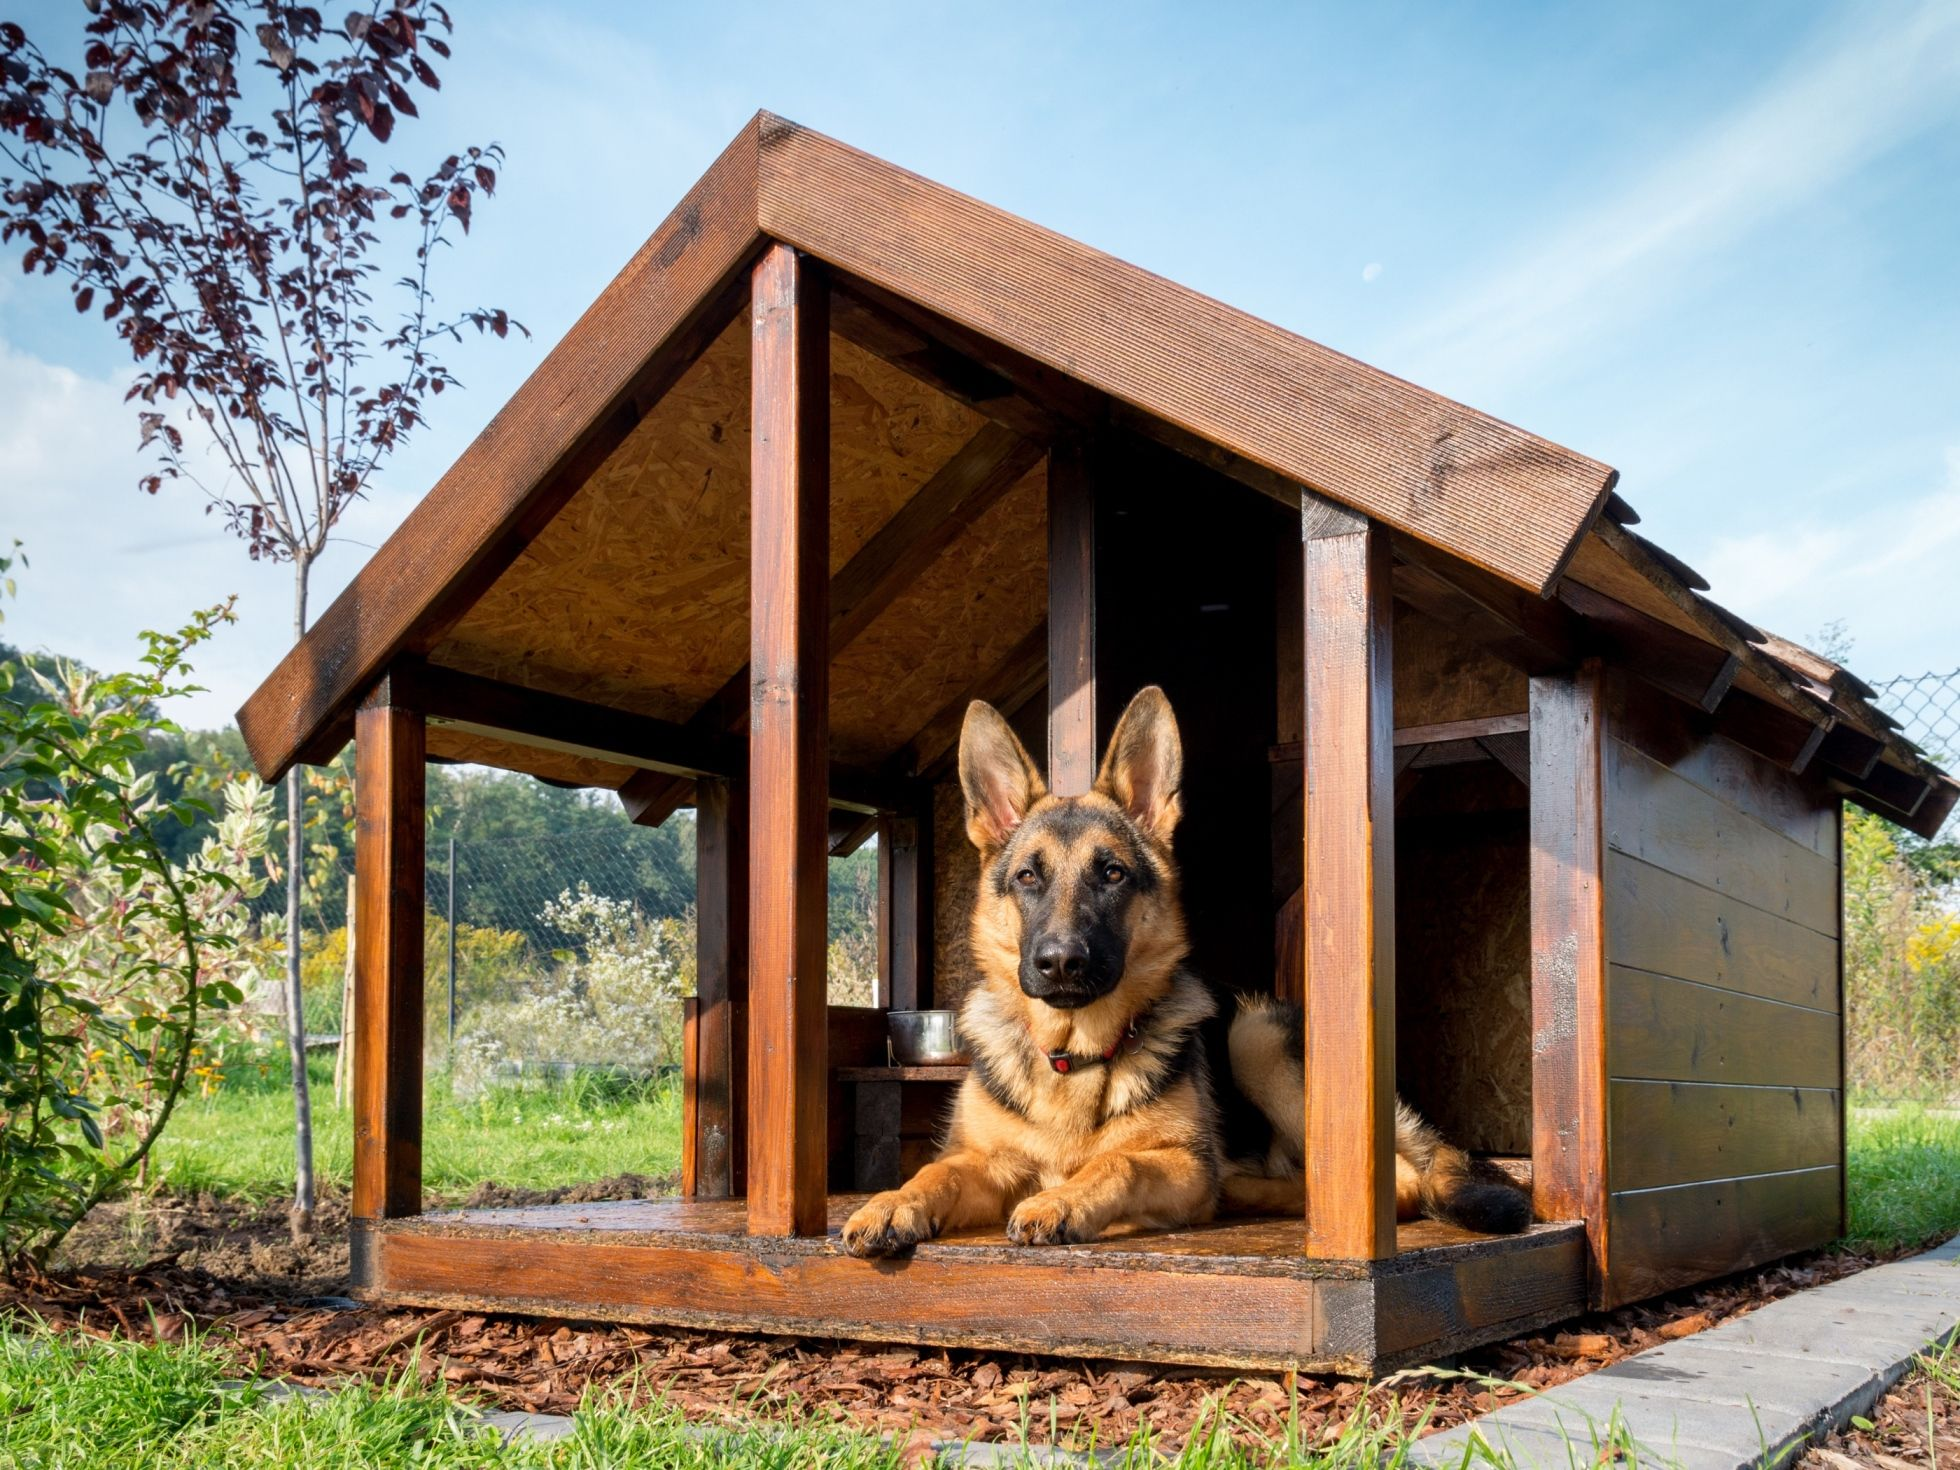 modern dog house  Домик для друга  pinterest  modern dog  - modern dog house